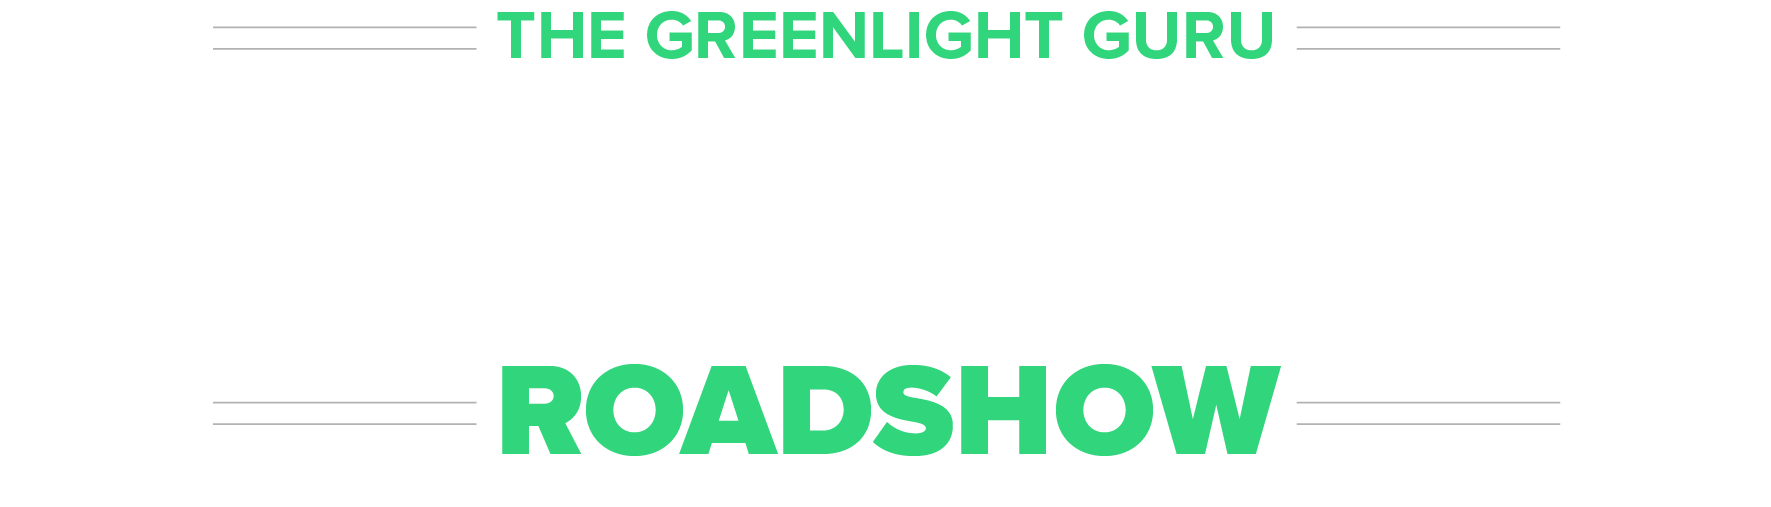 roadshow-logo-01